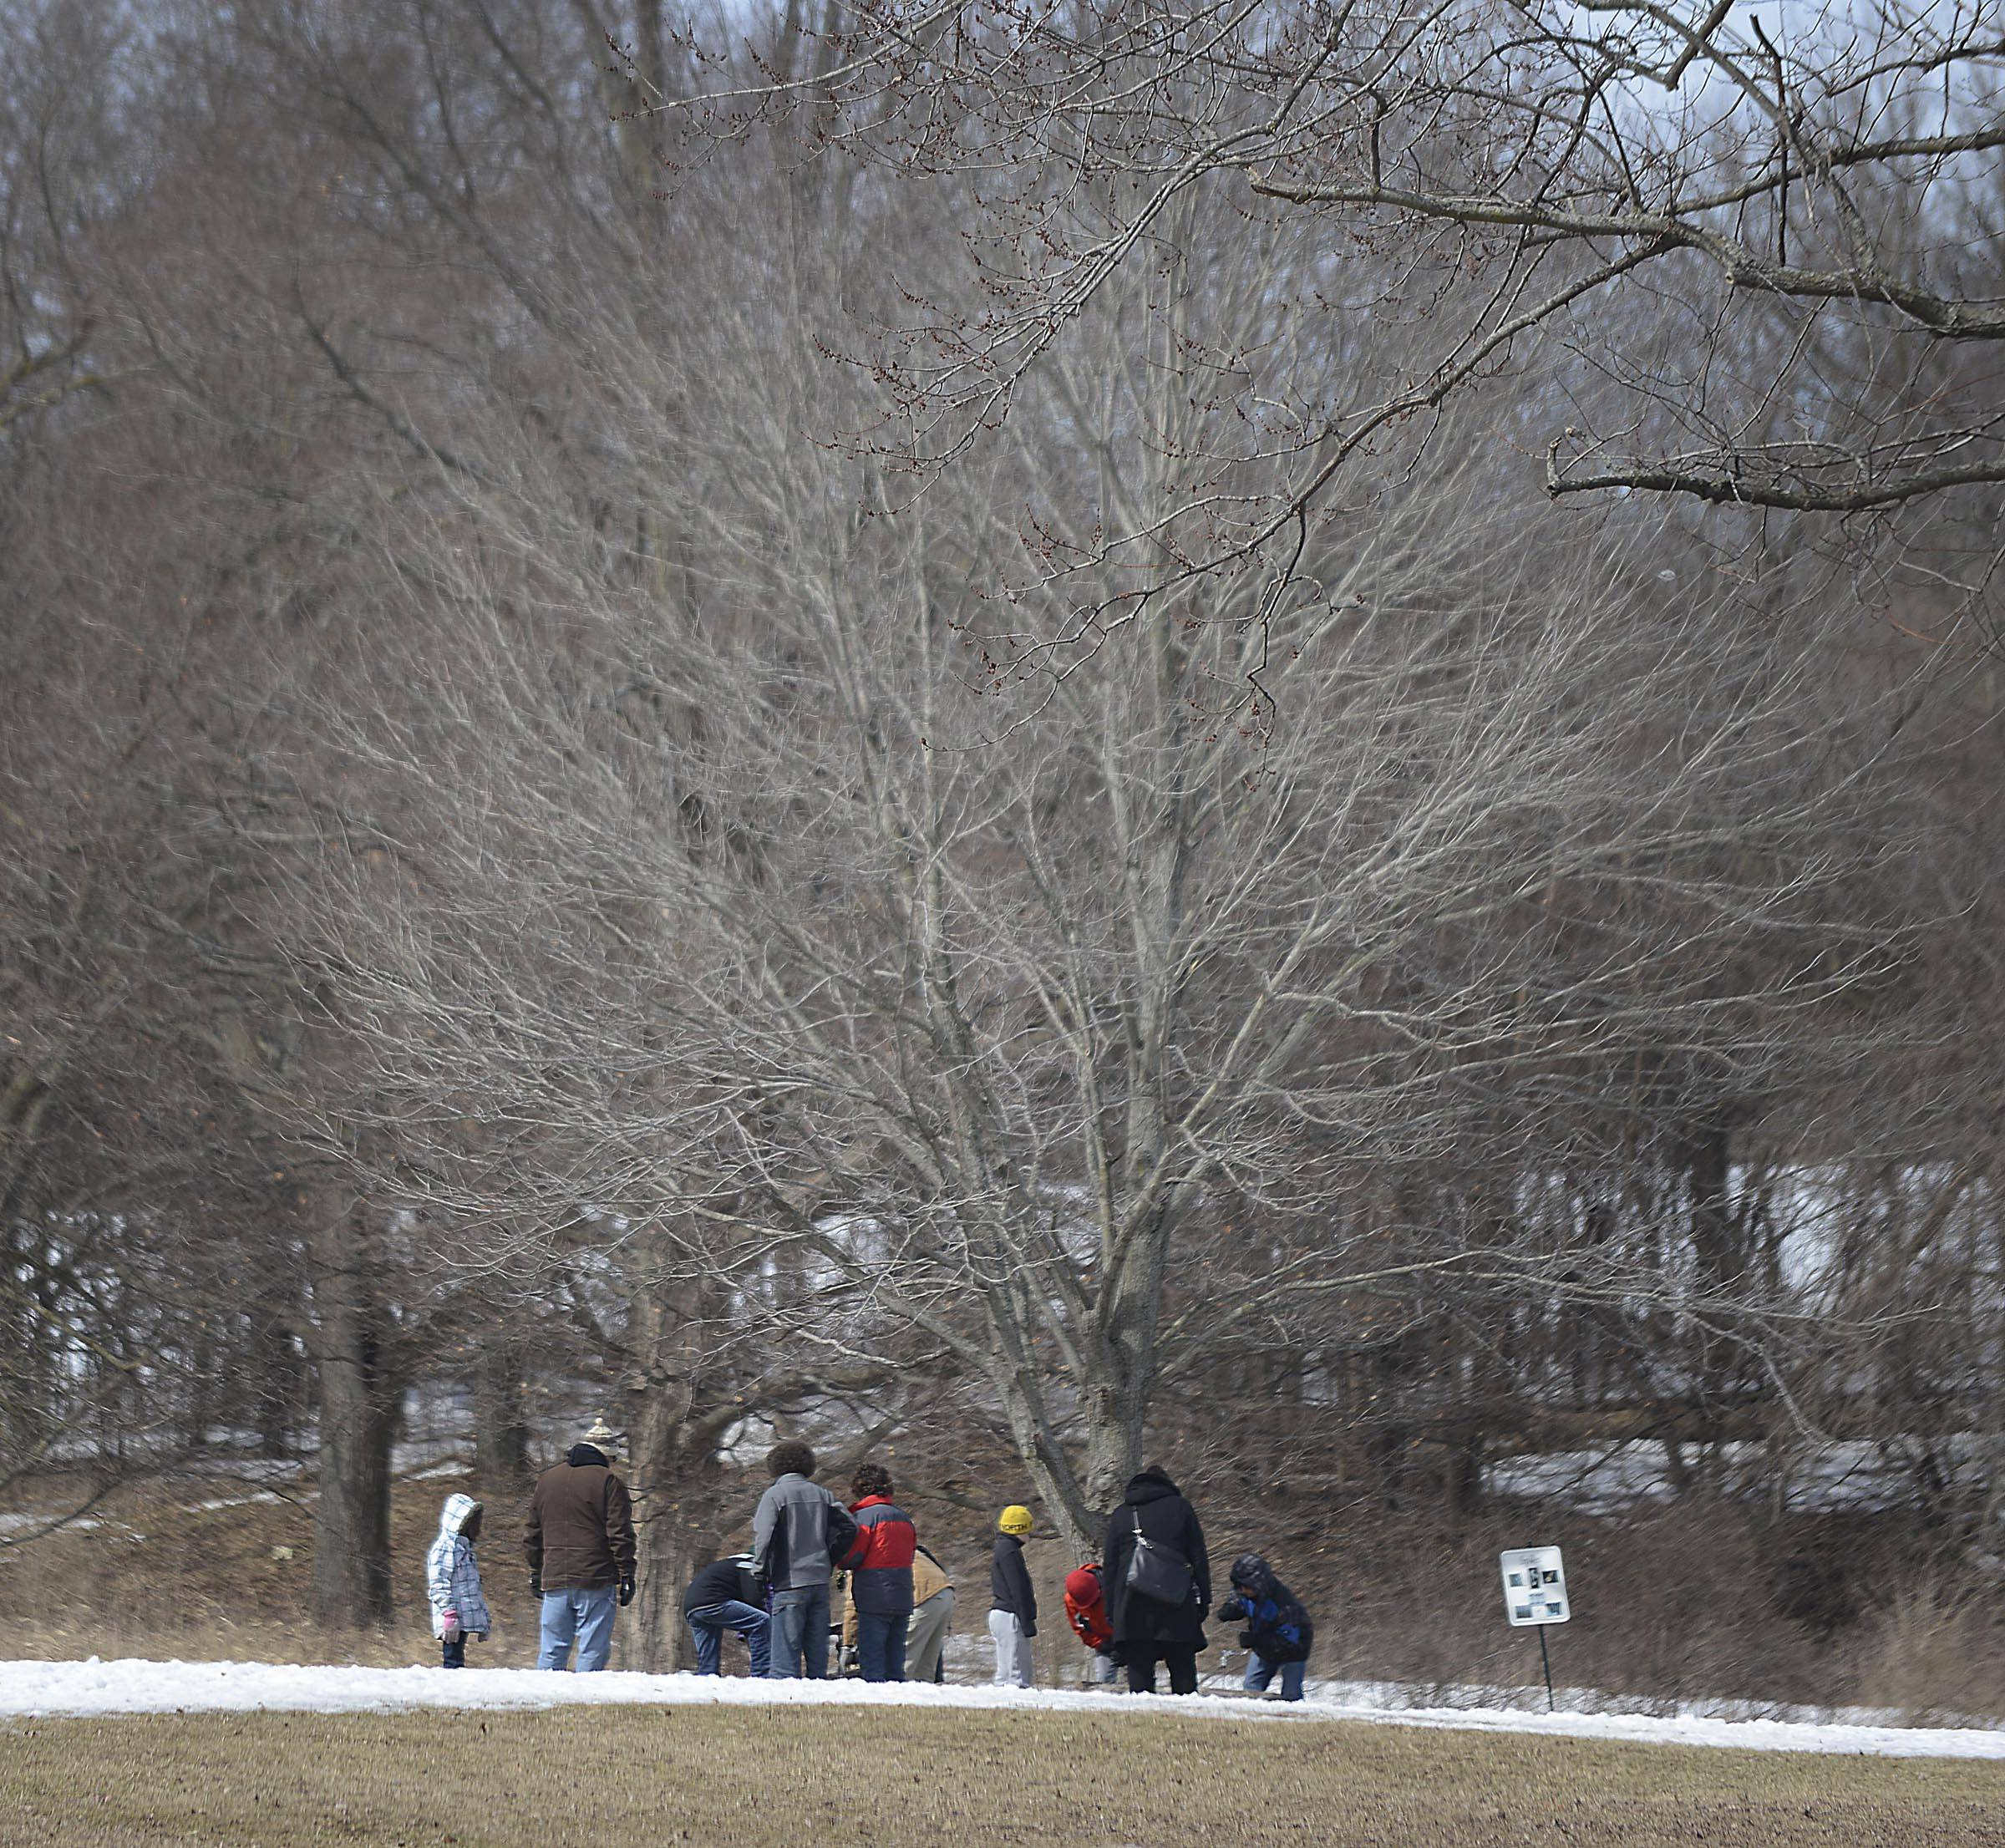 A group braves Sunday's chilly temperatures and wind chills to learn about how sap becomes syrup during Maple Sugaring Days at LeRoy Oakes Forest Preserve in St. Charles.